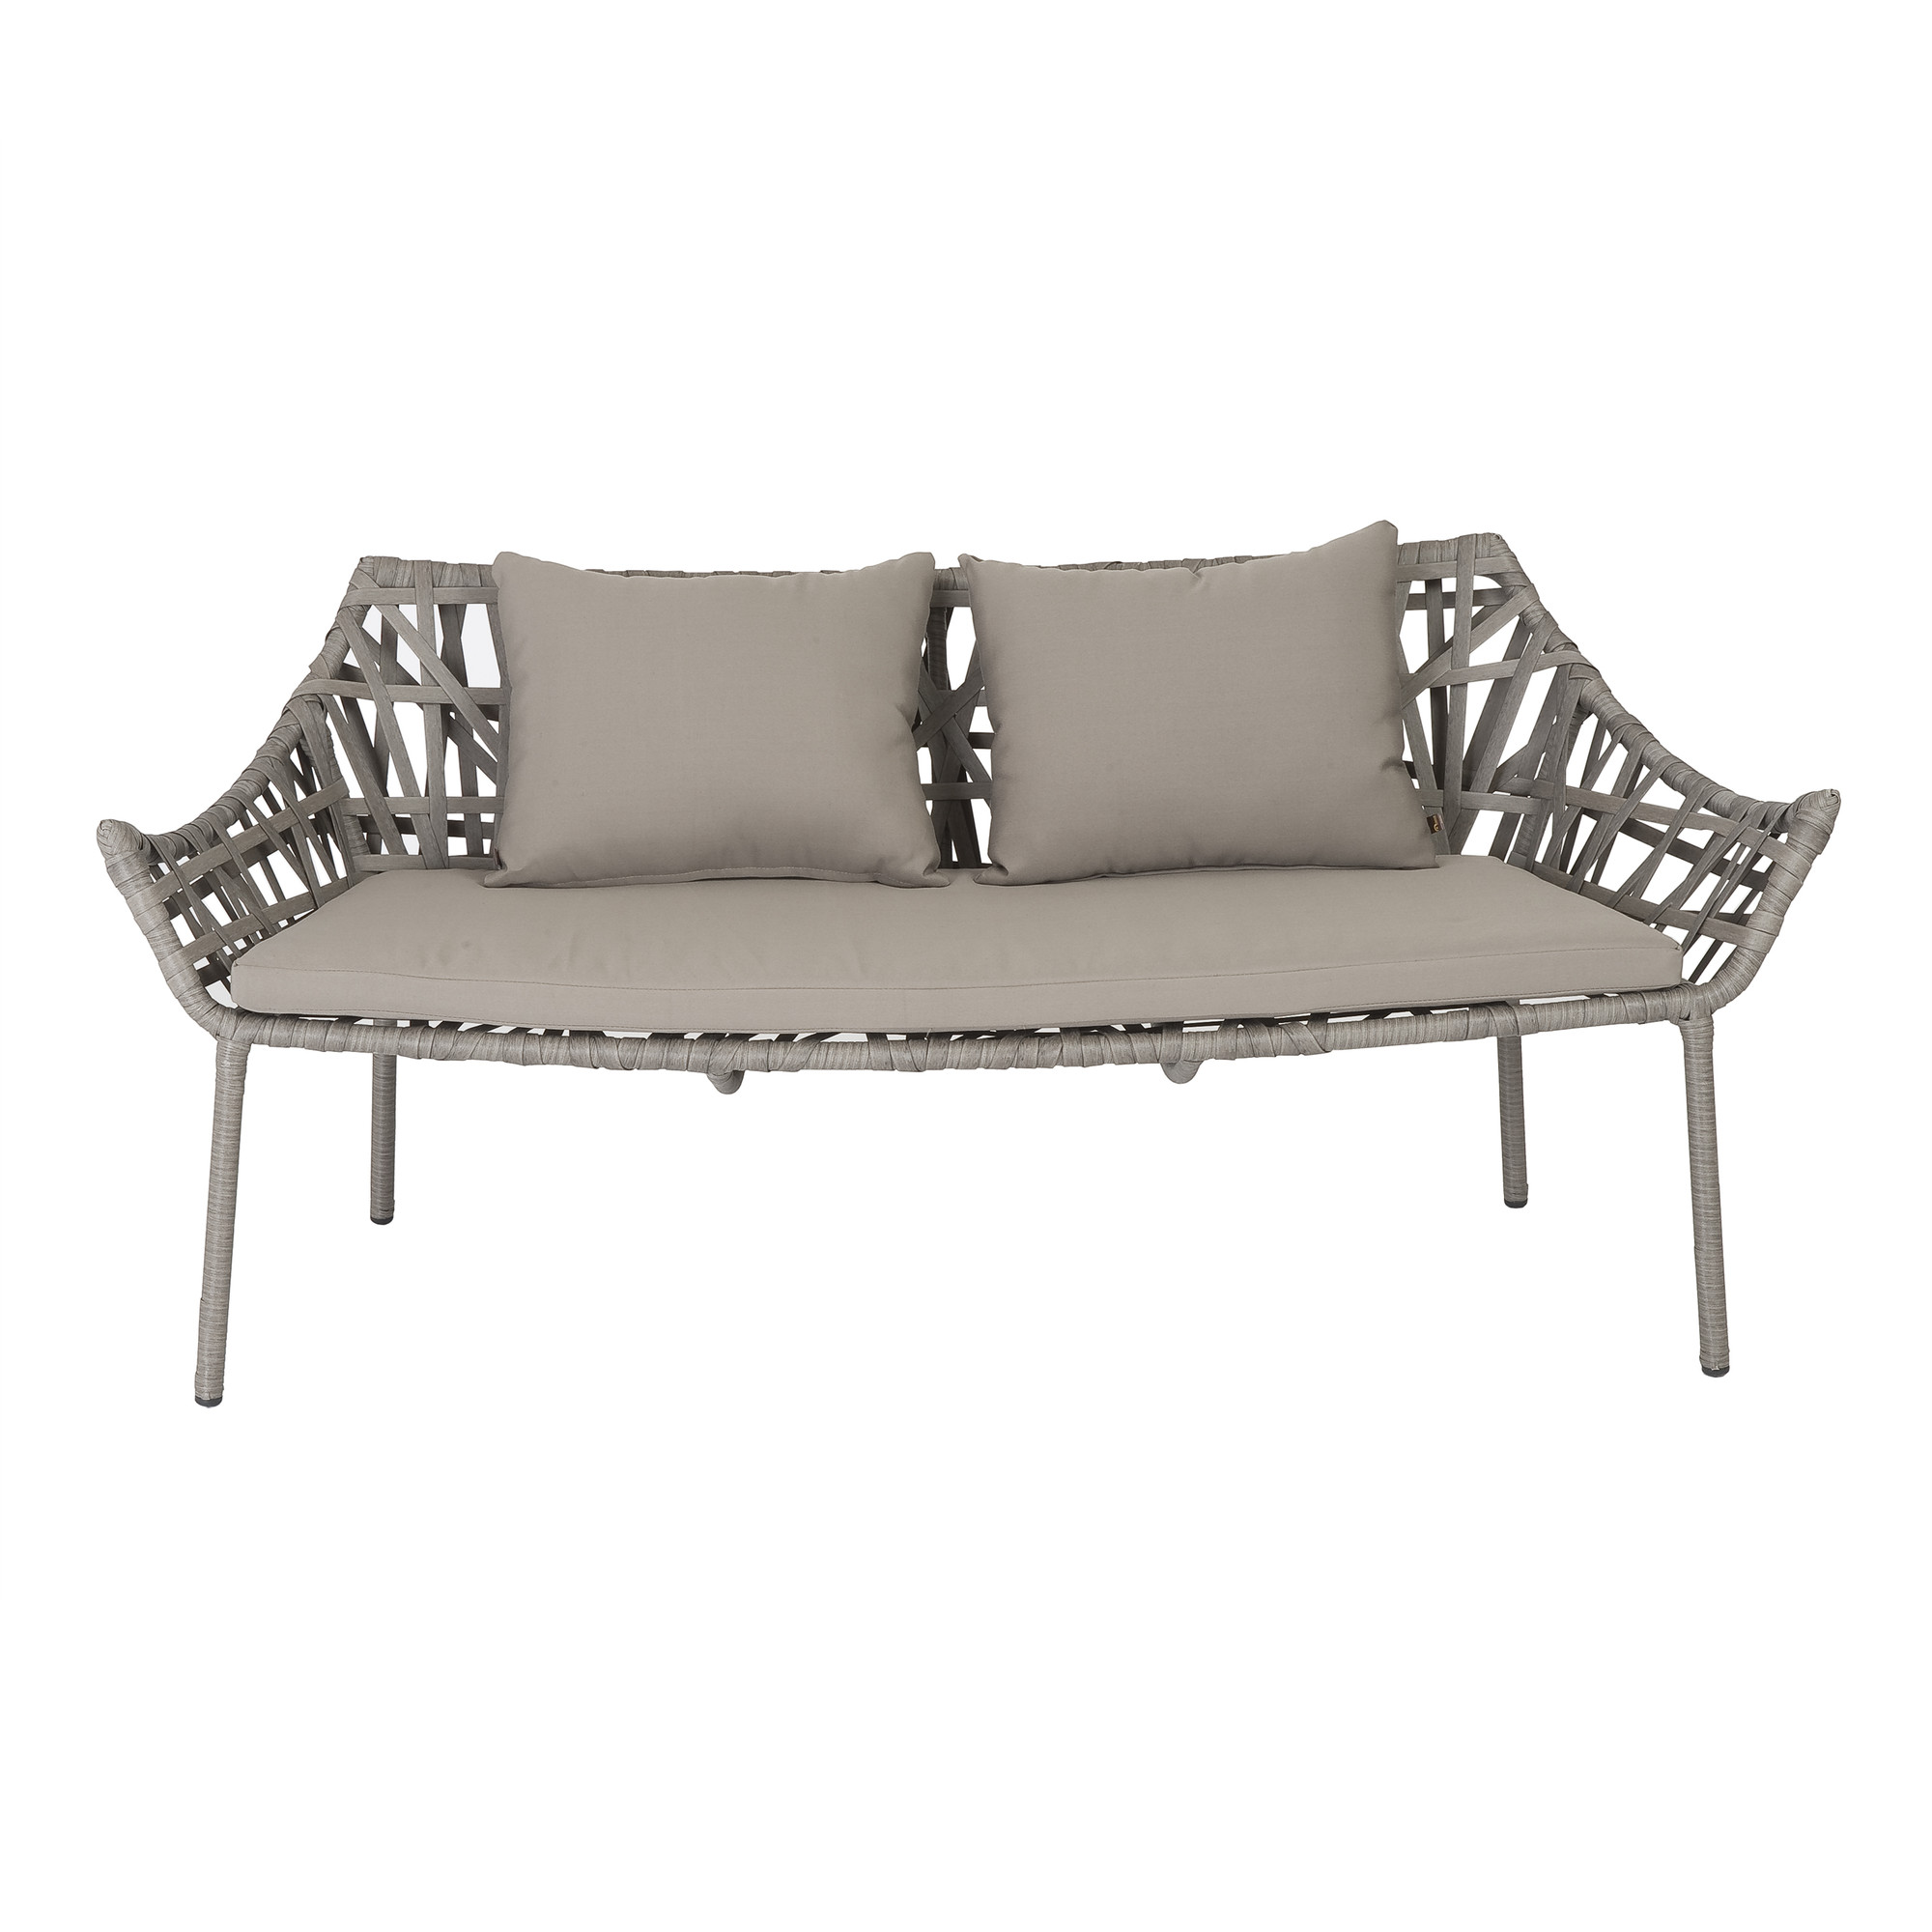 Eurostyle-Gazelle-Loveseat-with-Cushions.jpg